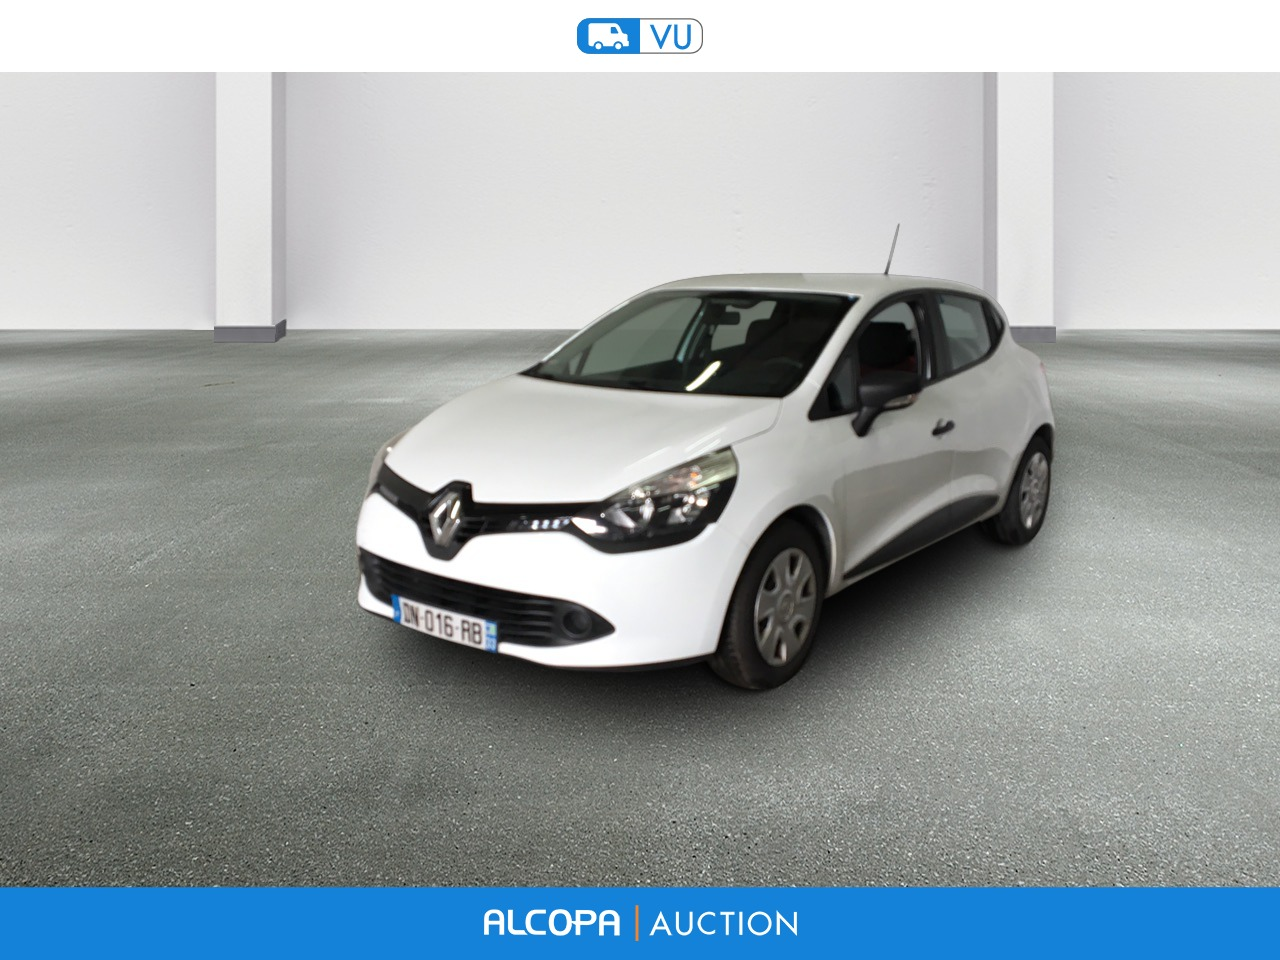 renault clio iv societe 07 2012 09 2016 clio iv societe dci 75 eco2 air 90g alcopa auction. Black Bedroom Furniture Sets. Home Design Ideas